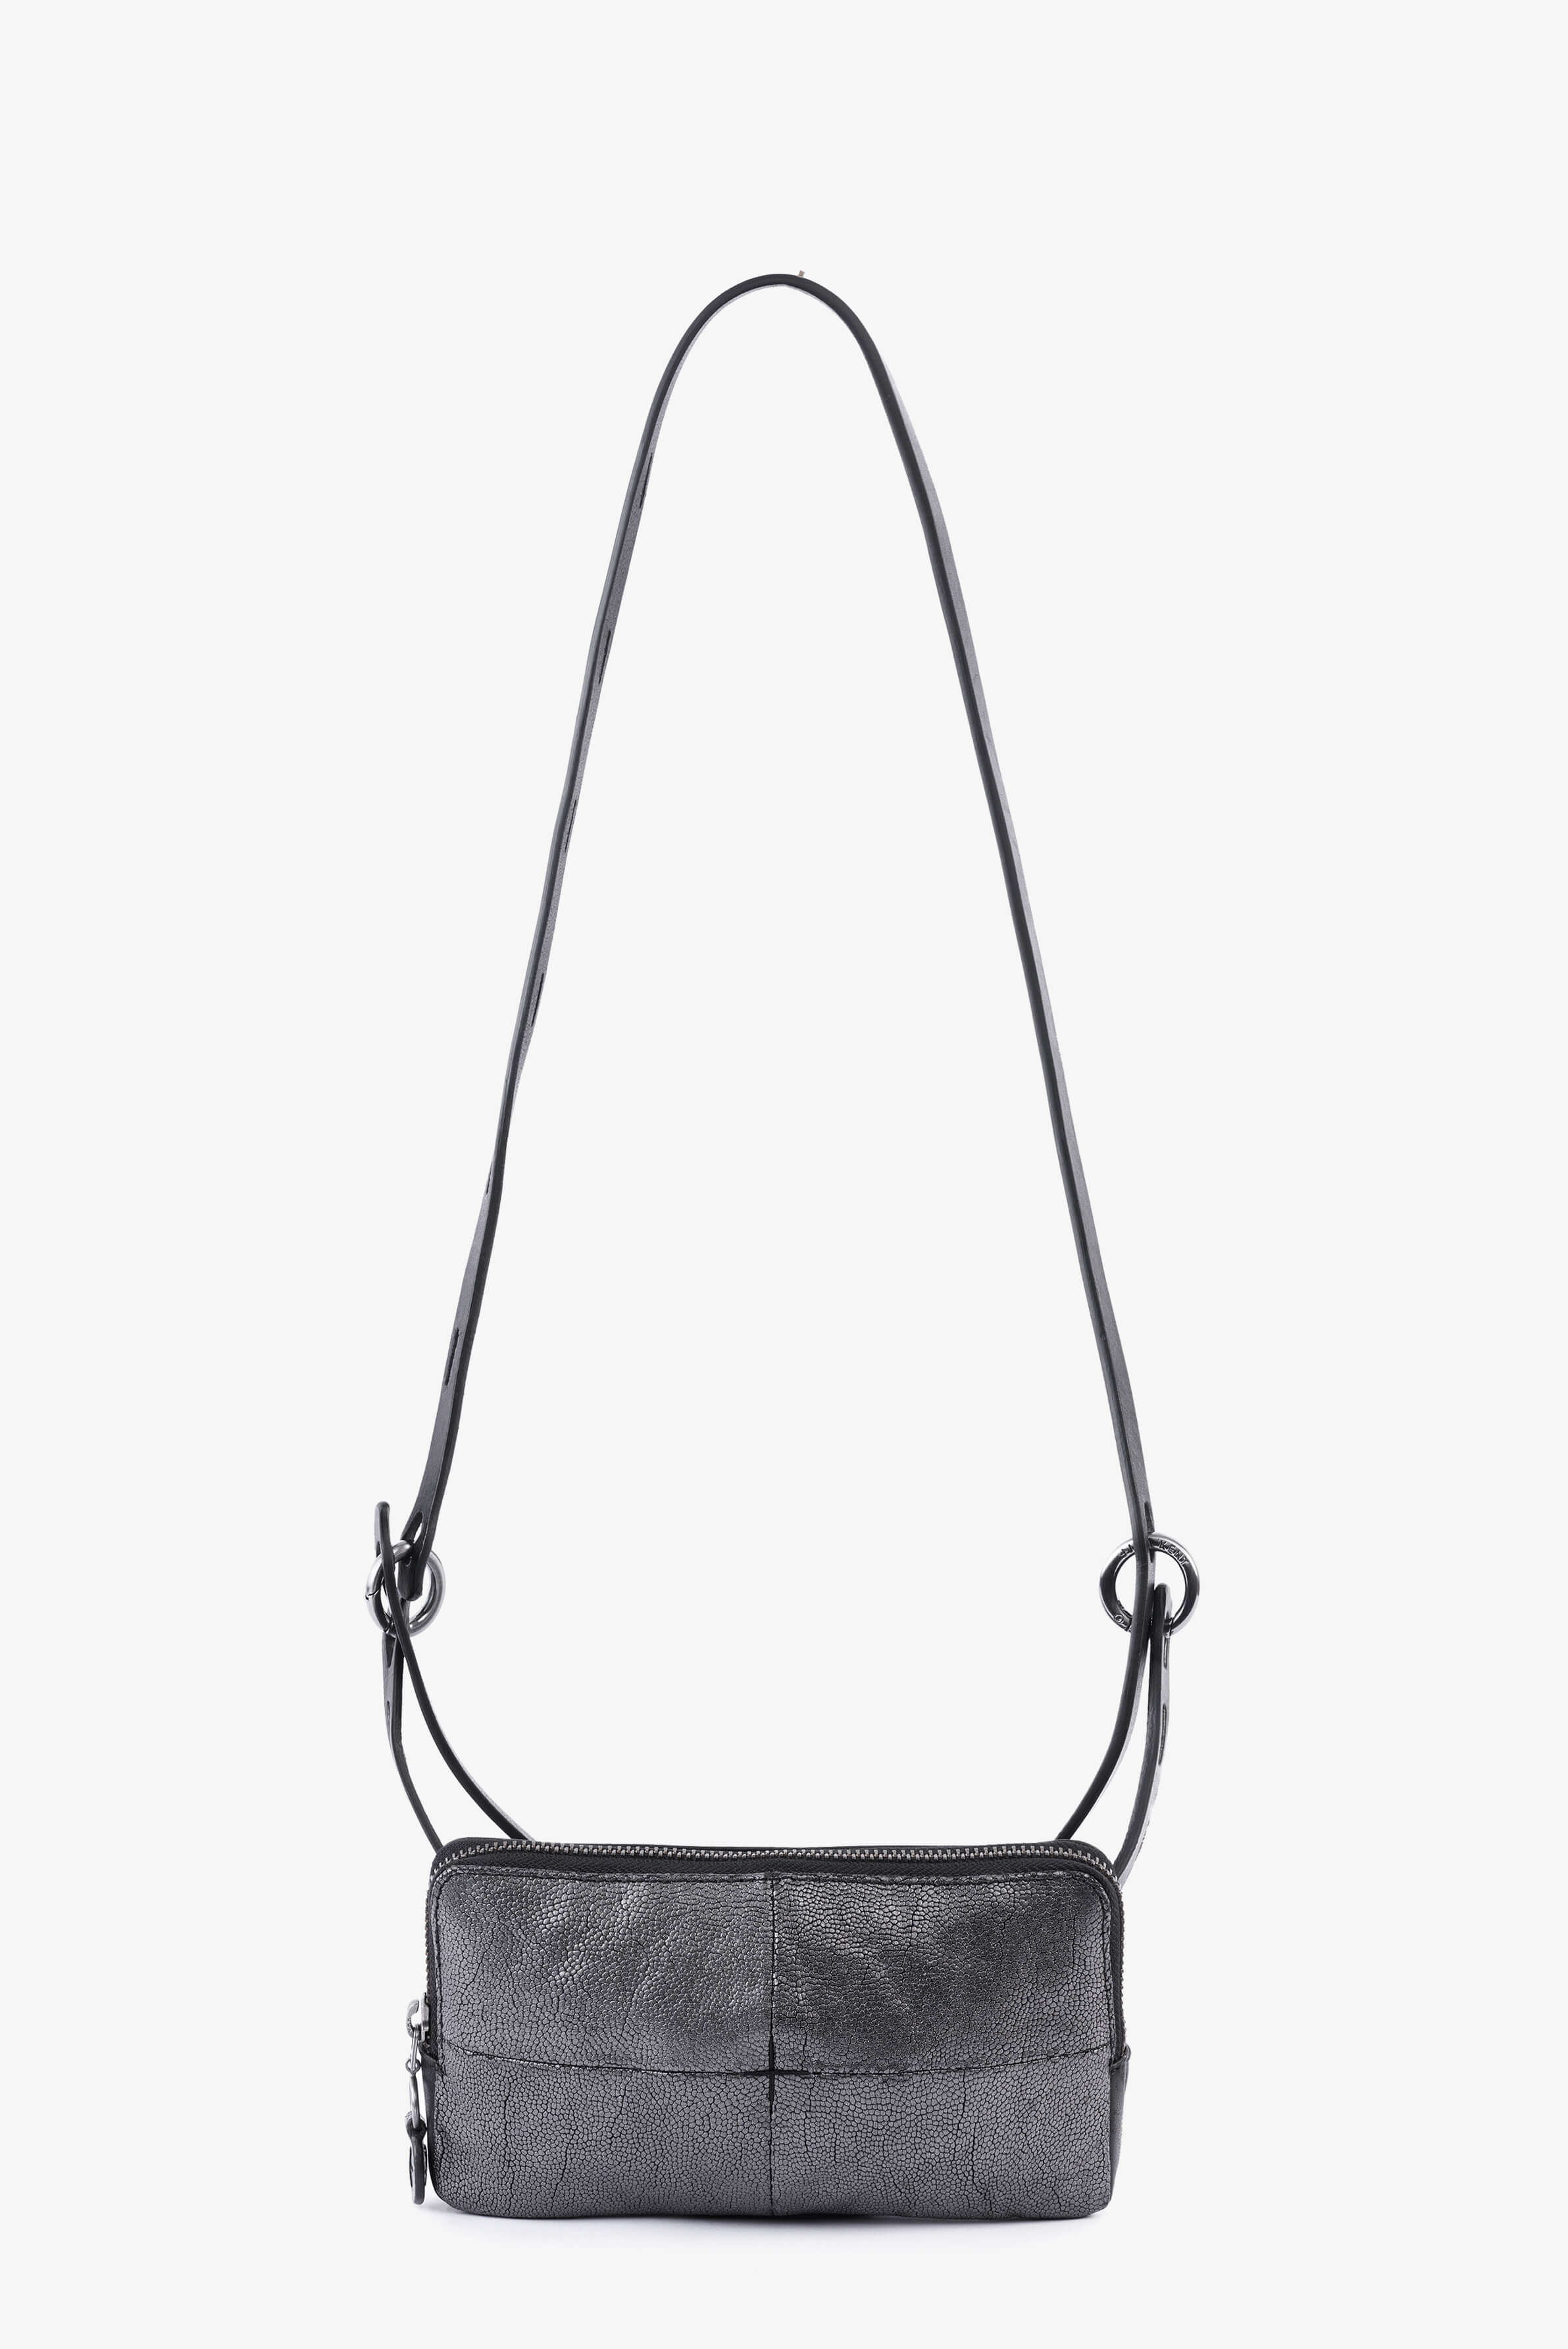 Ina Kent Honeycomb Black & Black Leather Small Handbag - MoMuse Jewellery